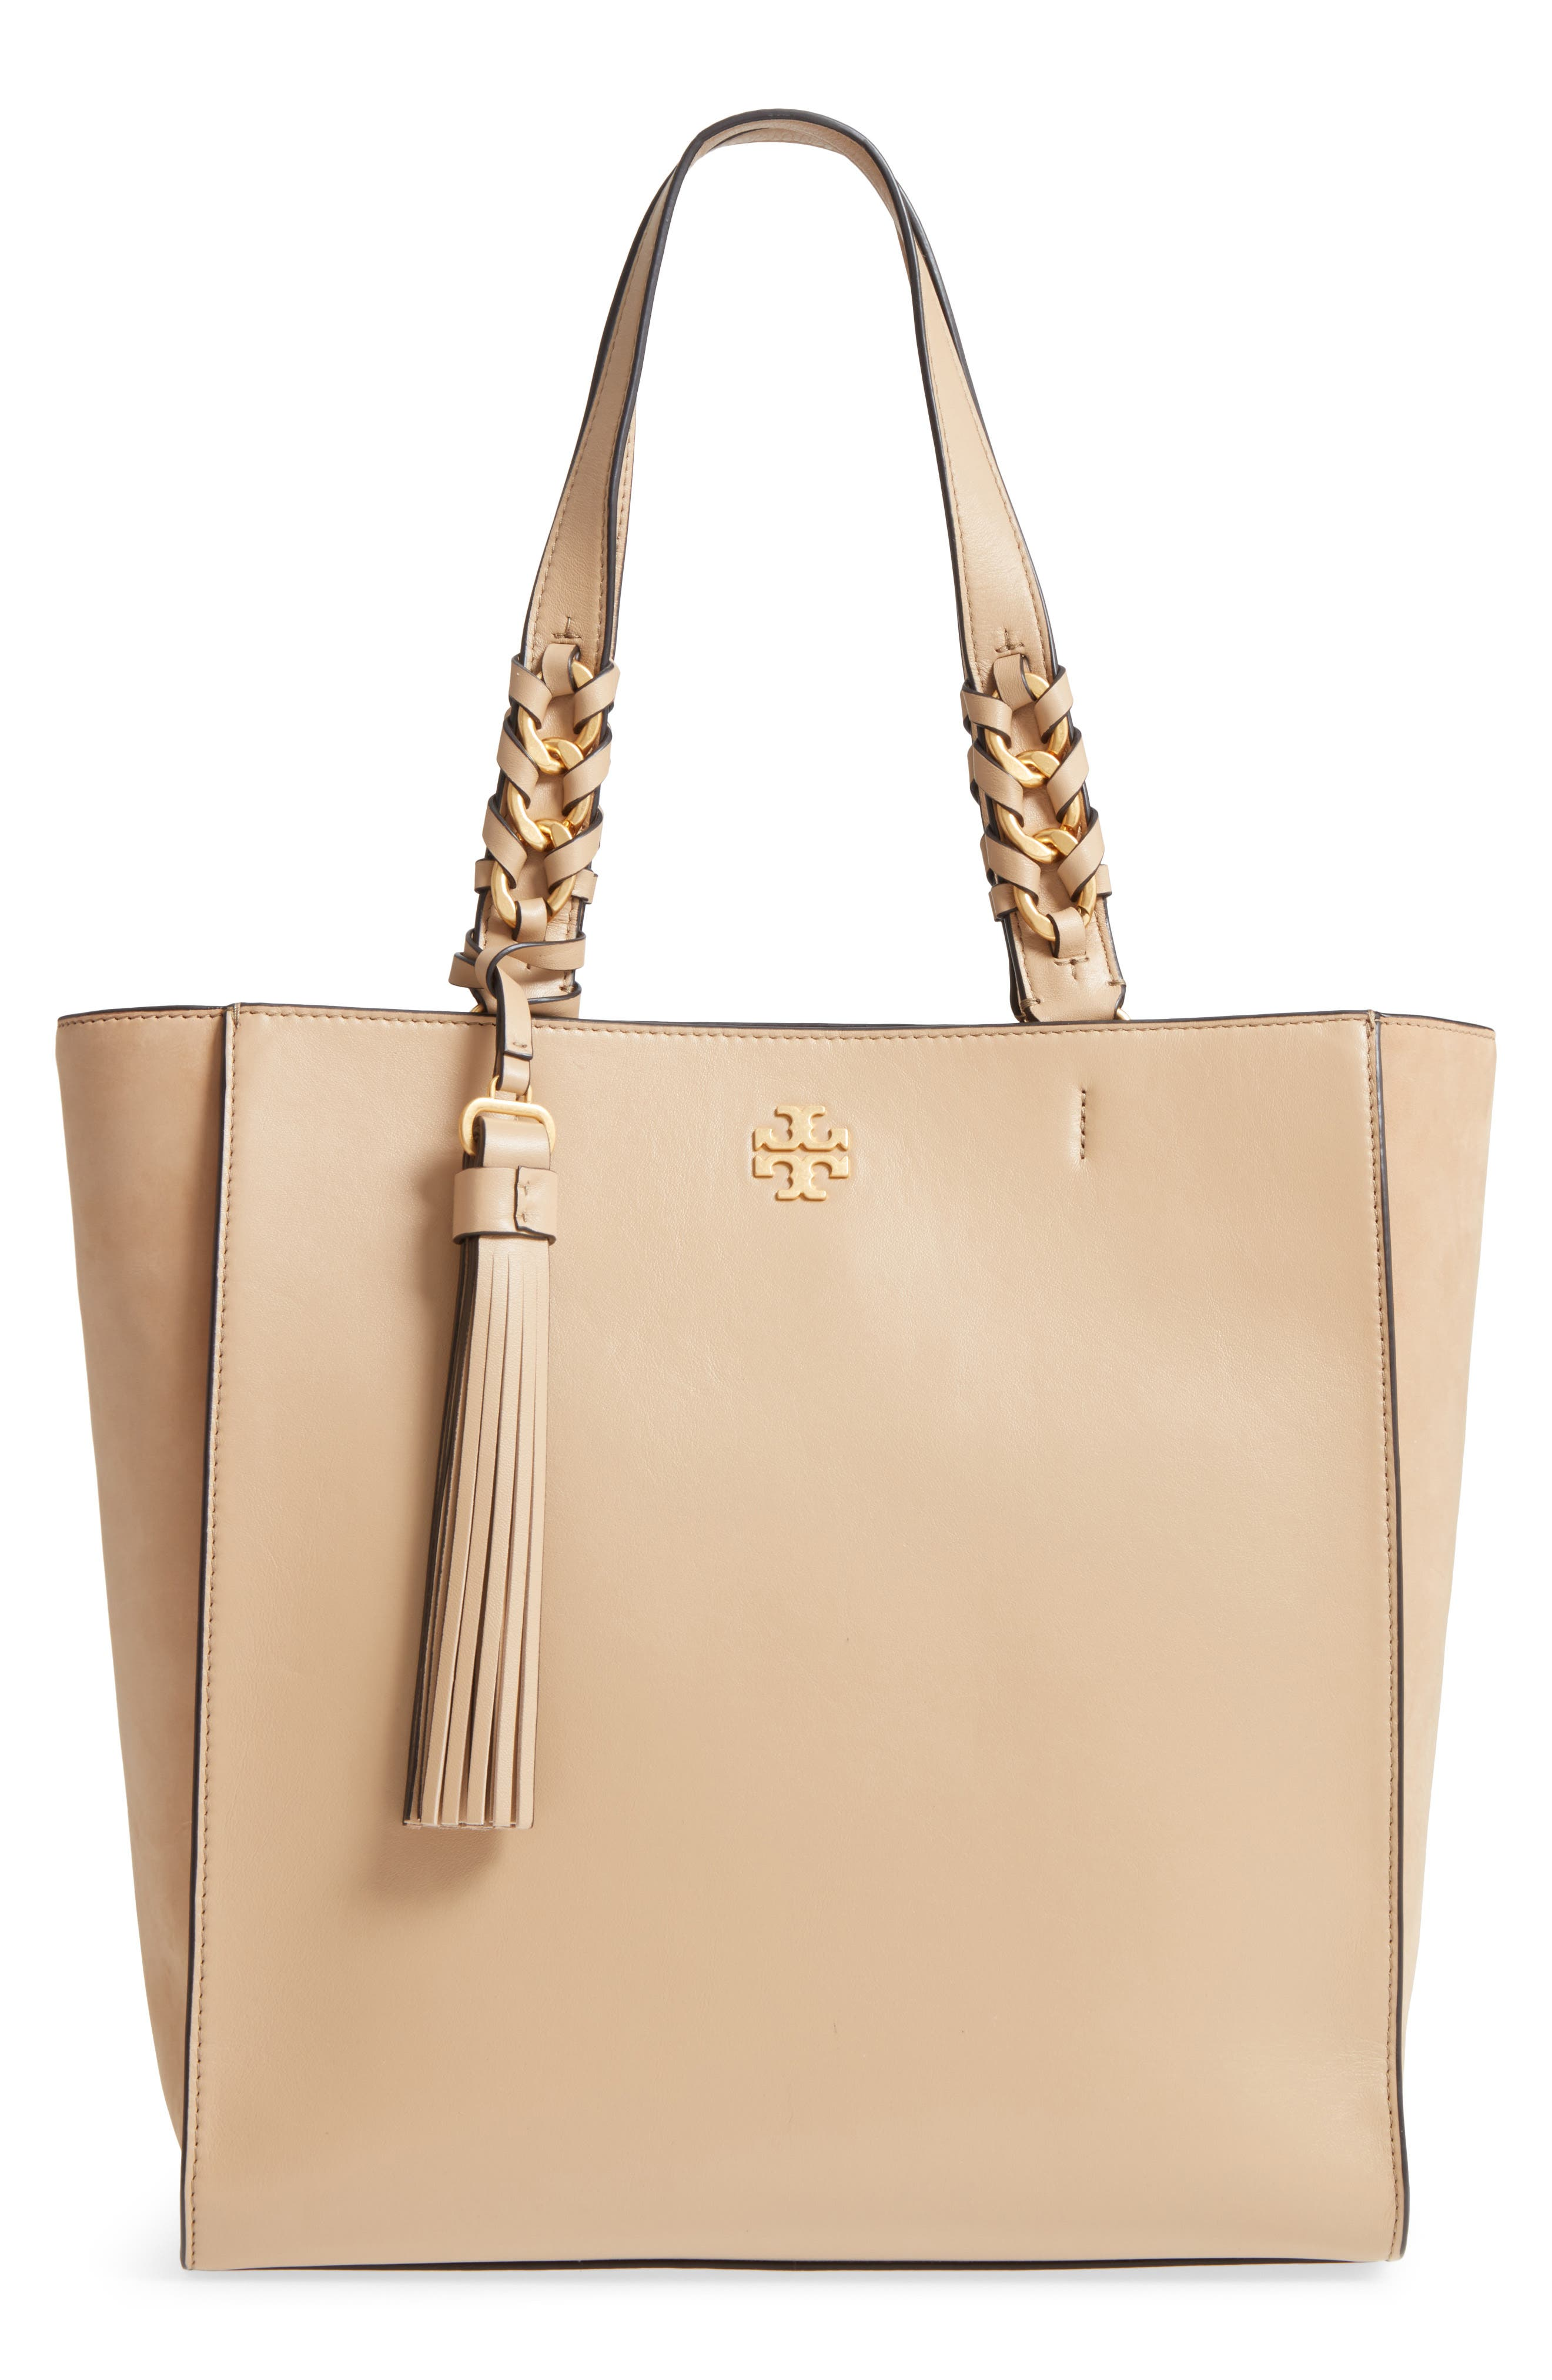 Tory Burch Brooke Leather Tote